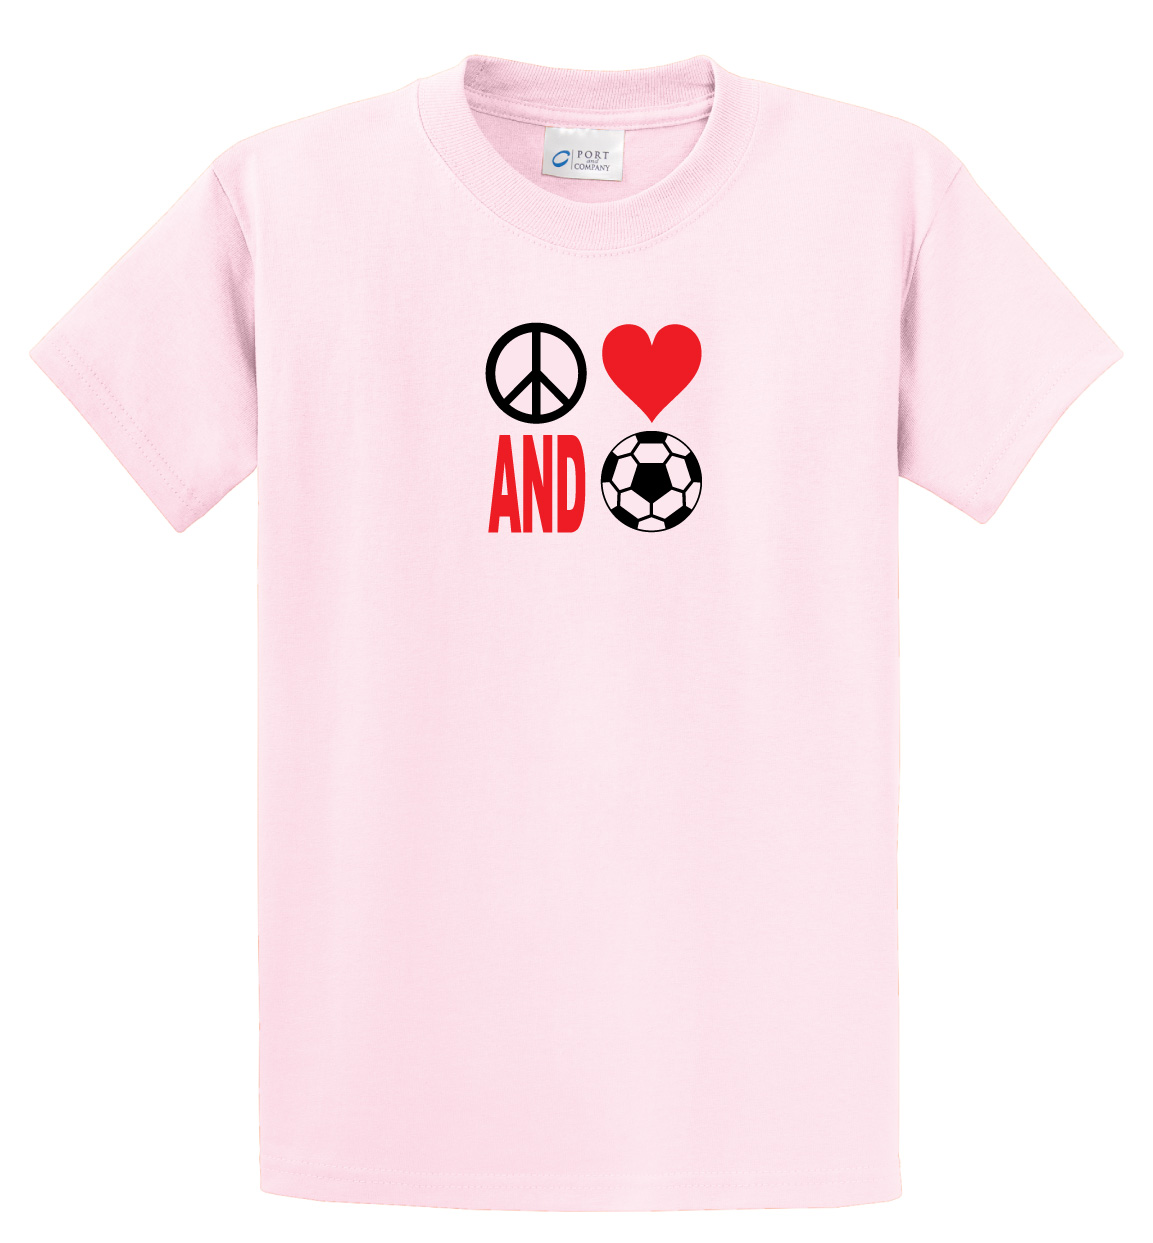 Peace Love and Soccer T-shirt in pale pink by Code Four Athletics